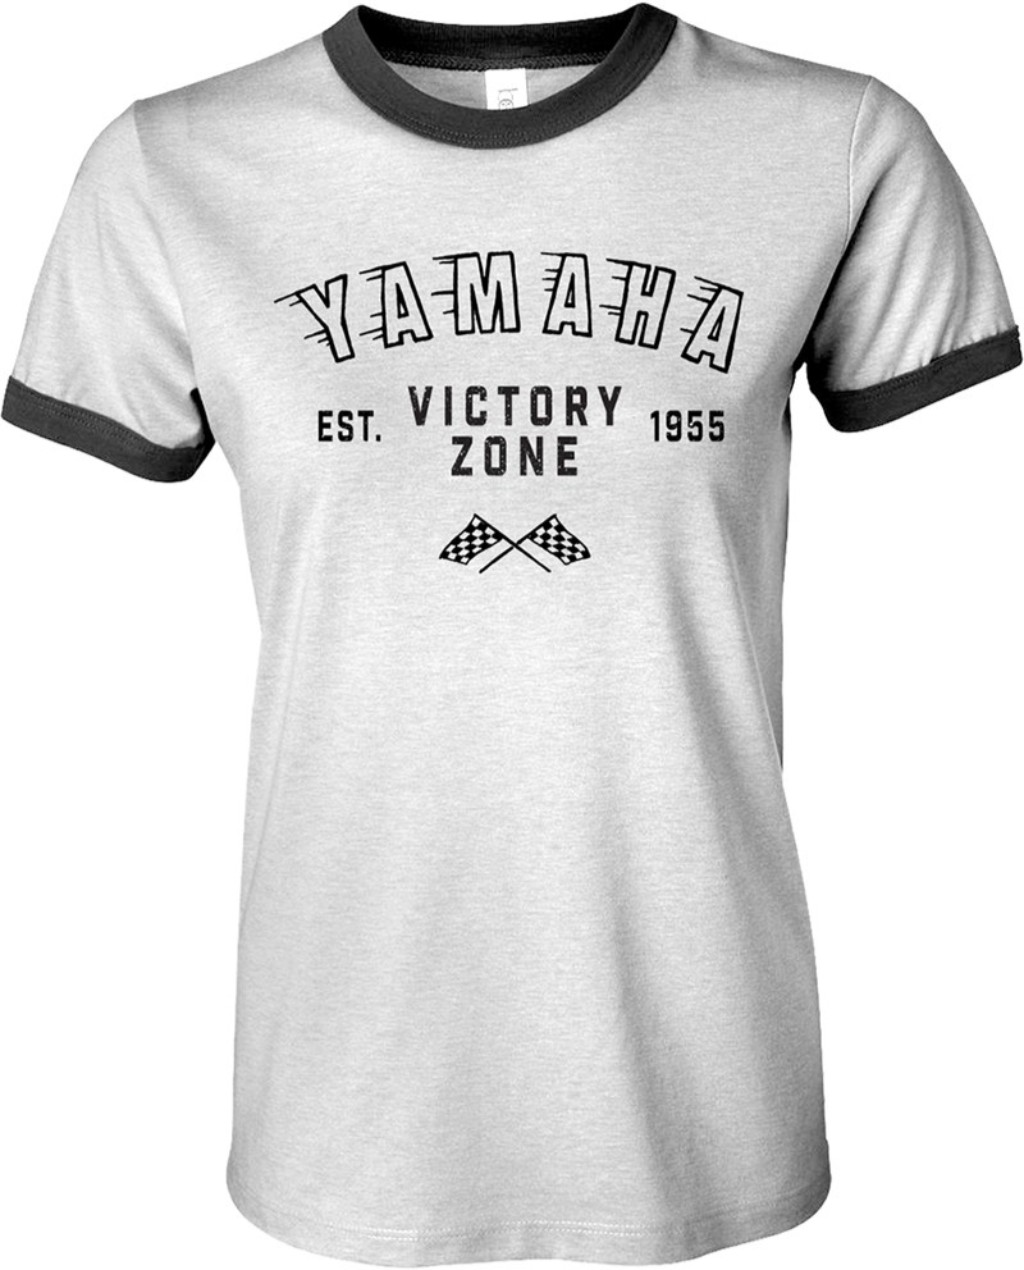 US YAMAHA Yamaha Racing Victory Zone Tee Dames